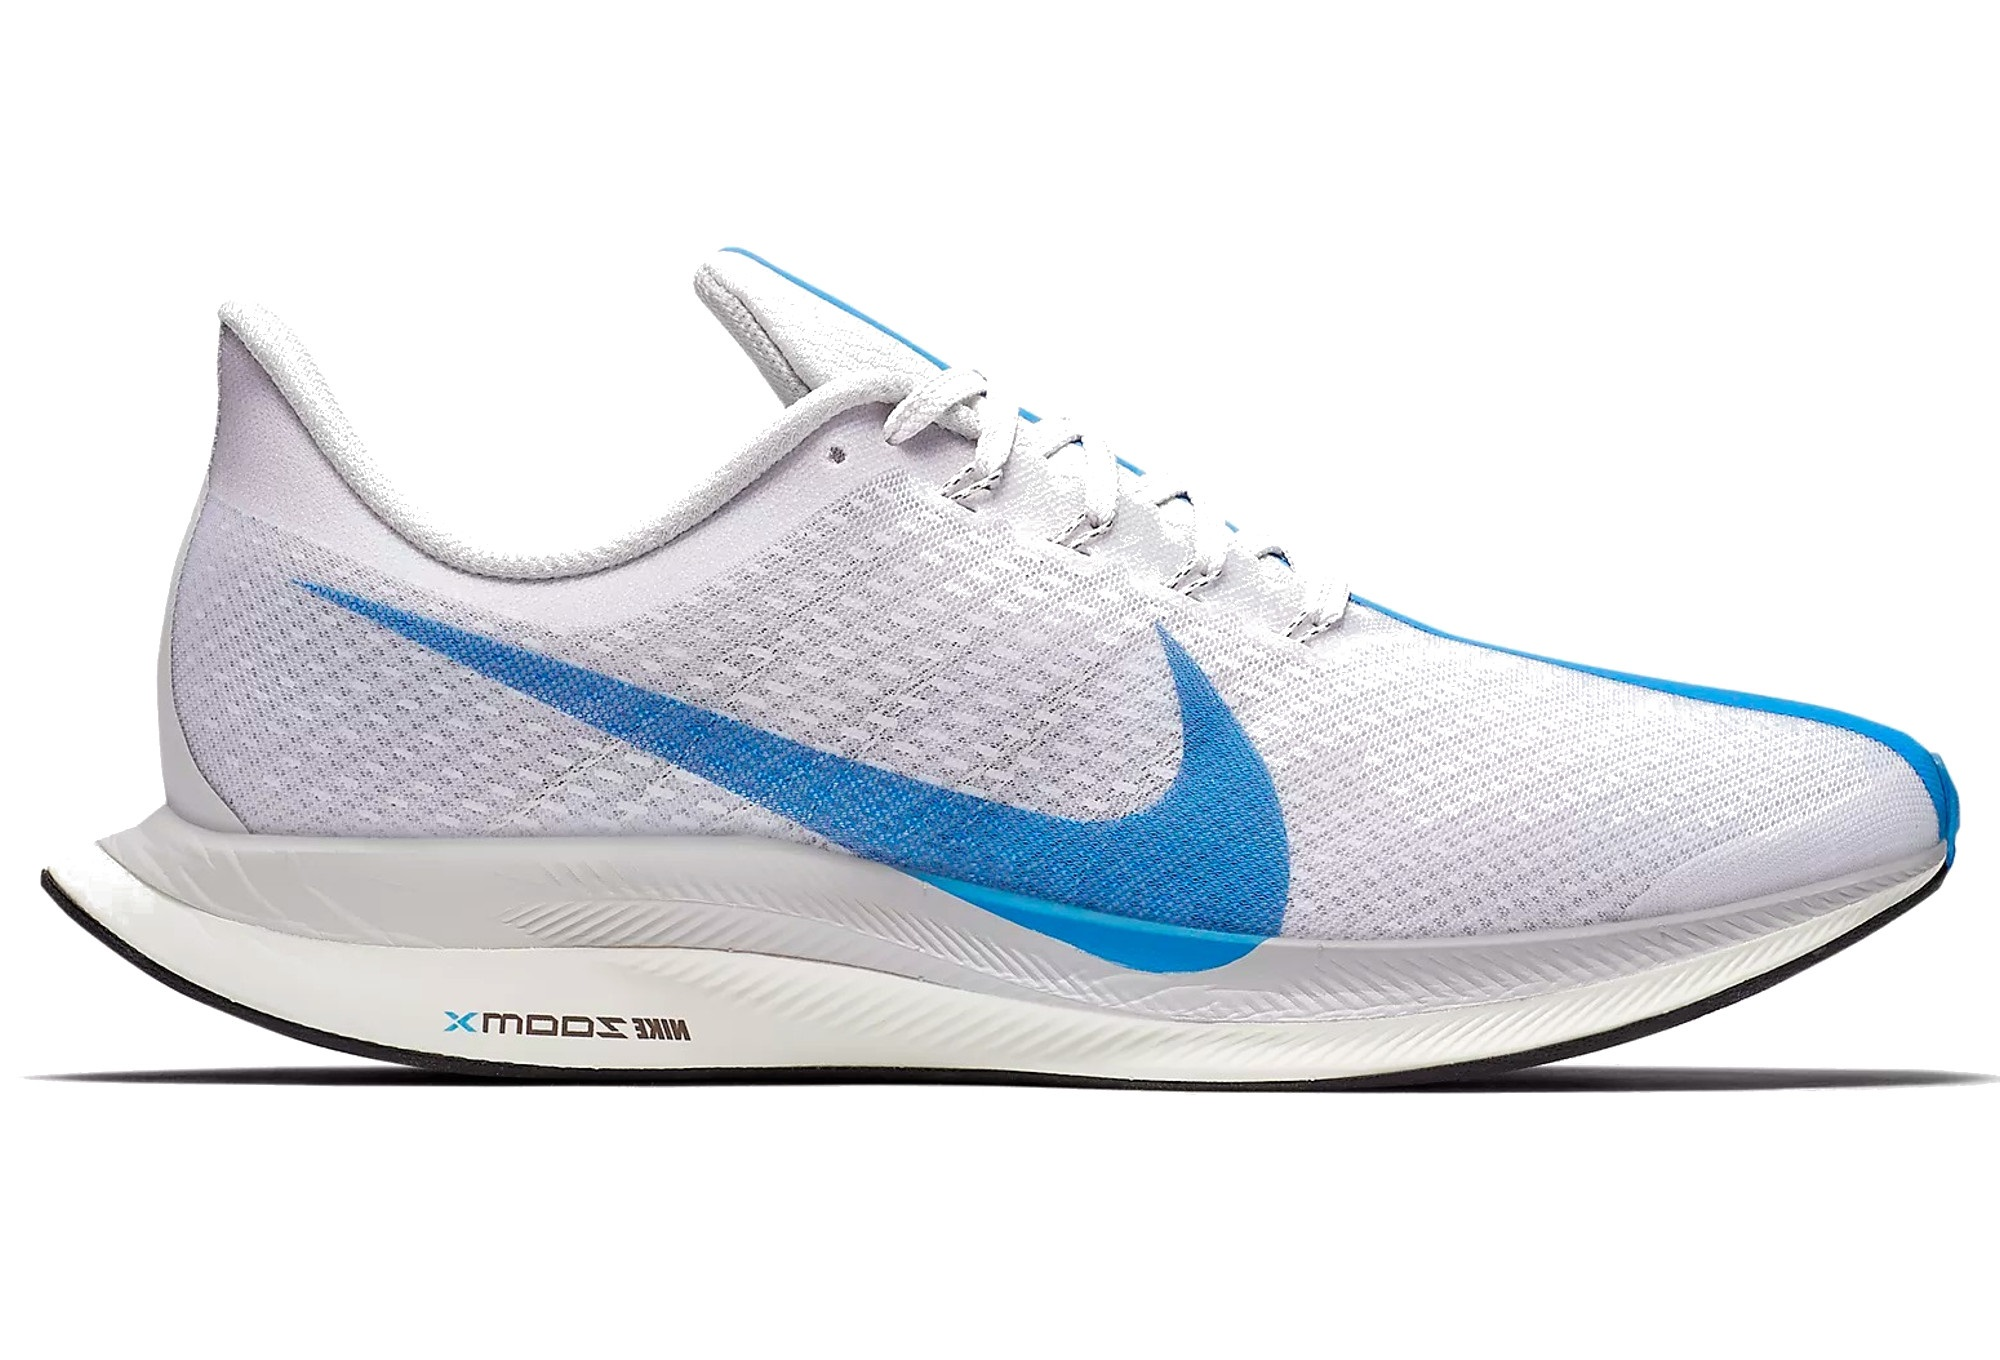 it Blu Pegasus Alltricks Biacno Nike Zoom Da Scarpe Running Turbo xT6wzqHA0Z